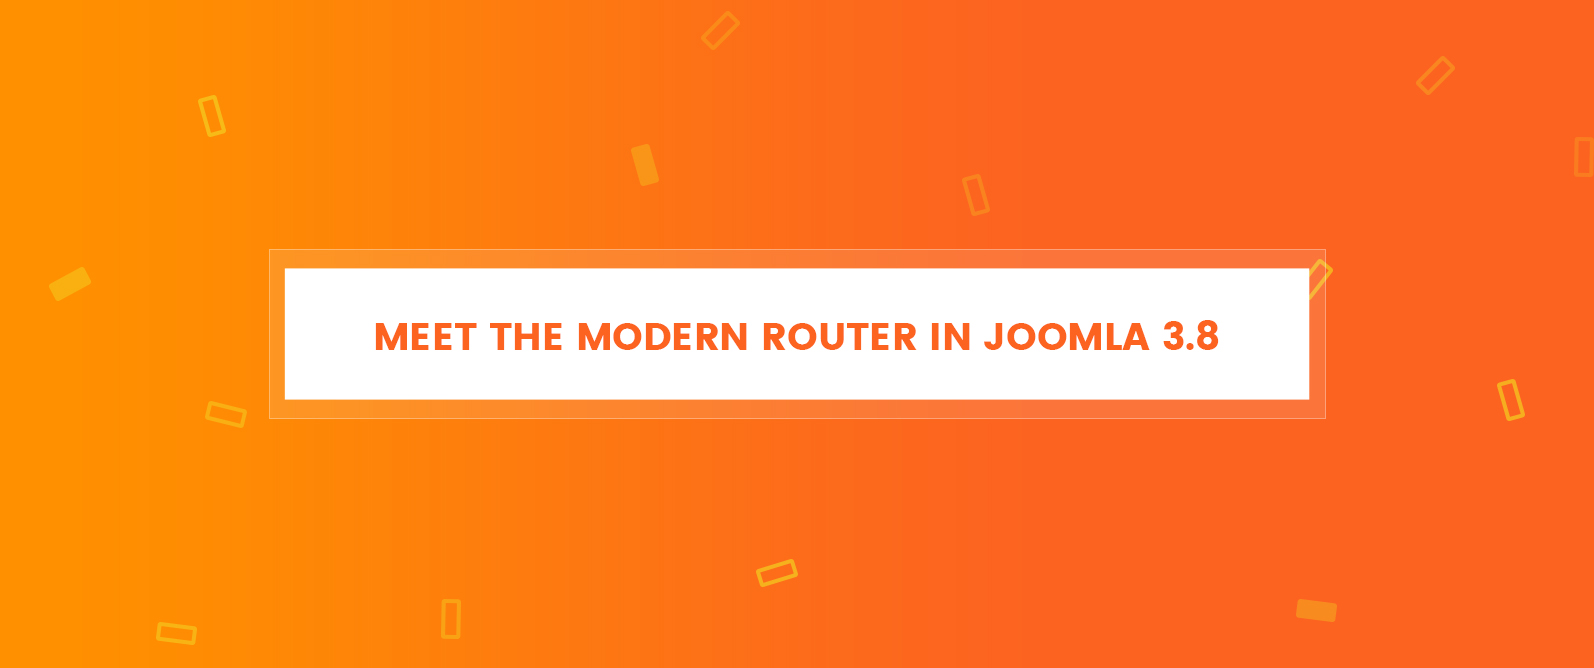 Meet-The-Modern-Router-In-Joomla-3.8